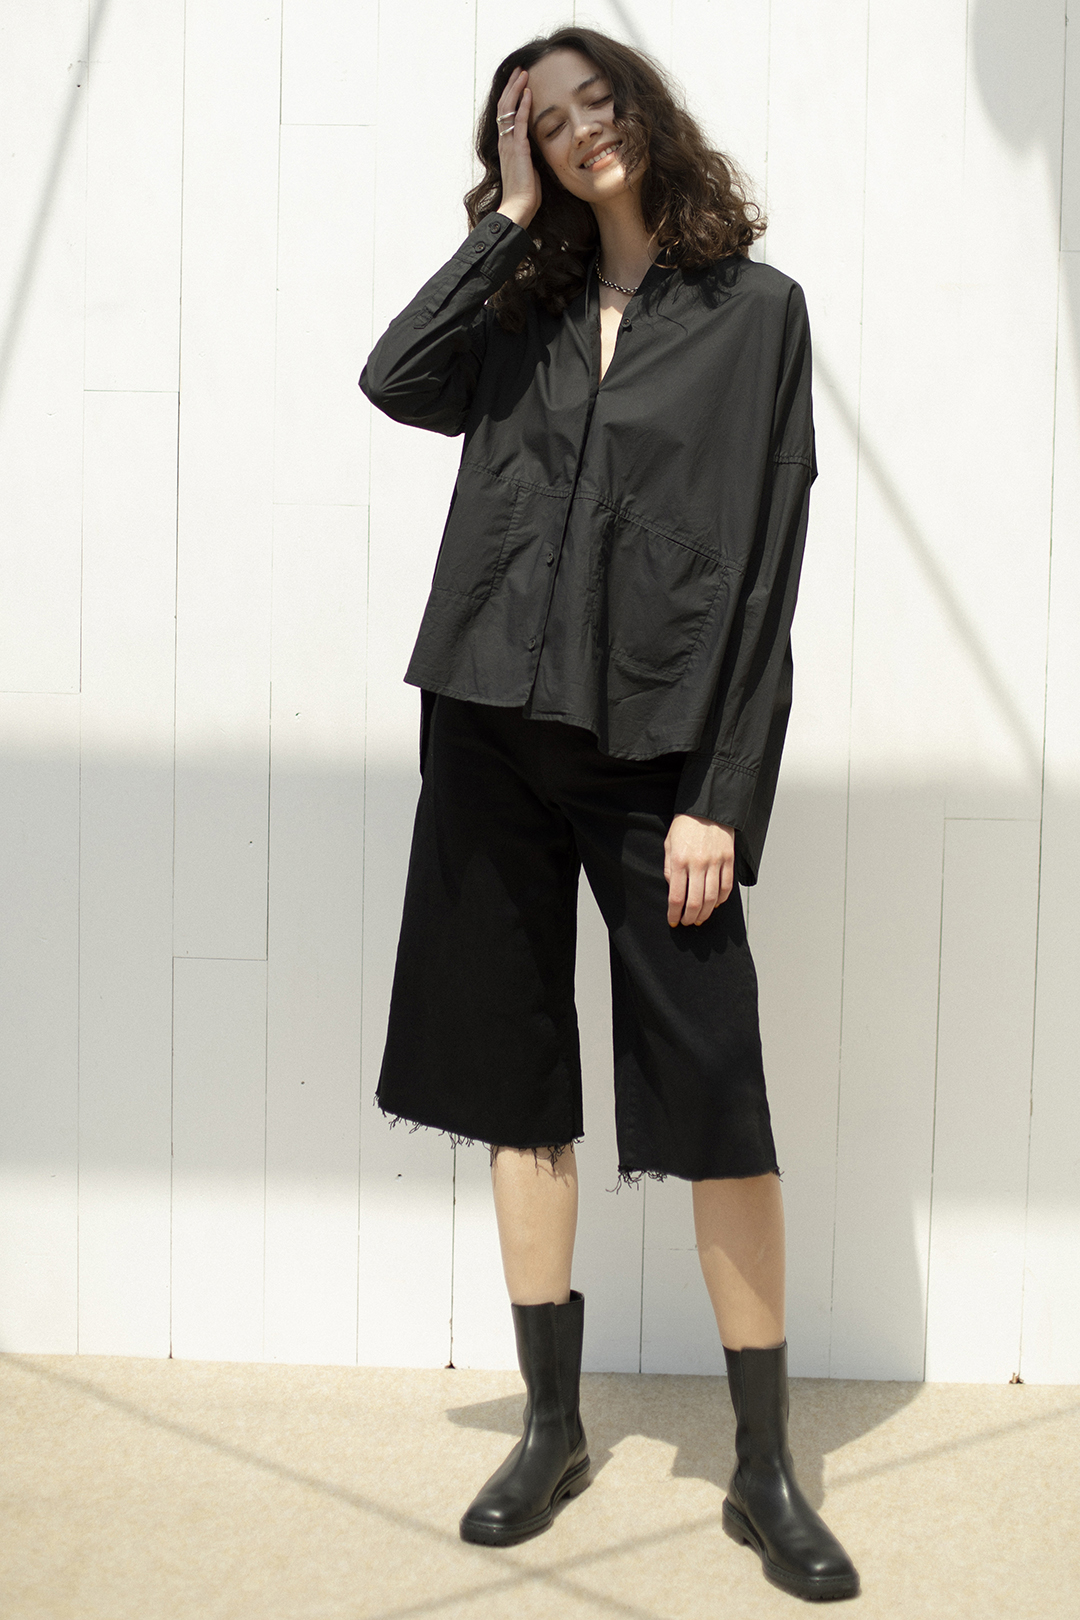 26_2 shirt¥28,600  pants¥39,600  necklace¥319,000  ring¥207,900  ring¥91,300  shoes¥64,900